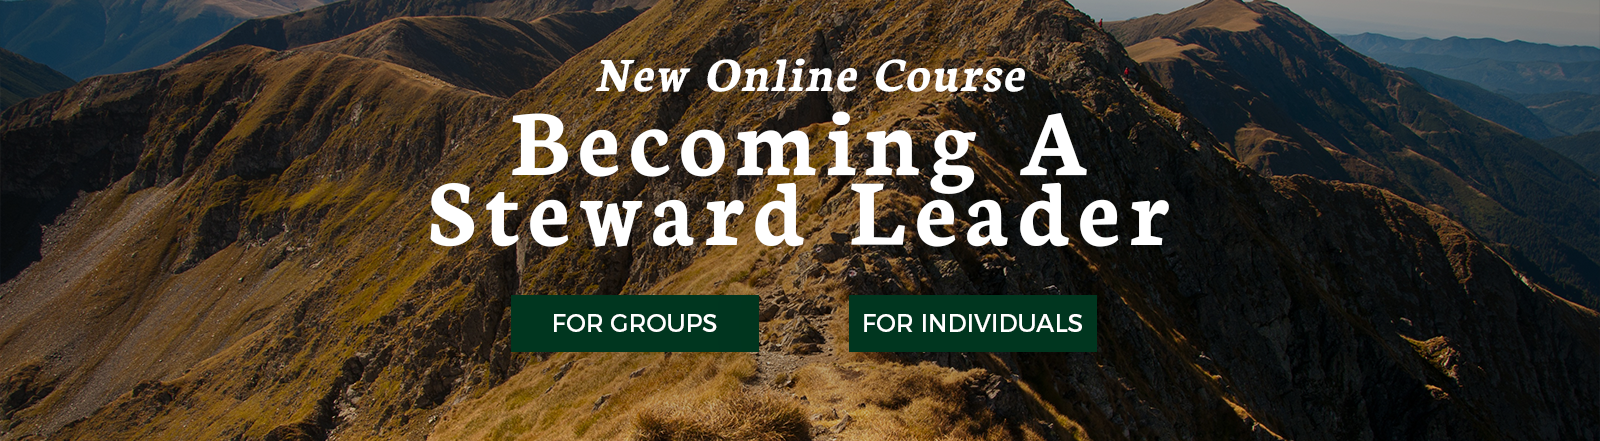 Becoming a Steward Leader Online Course